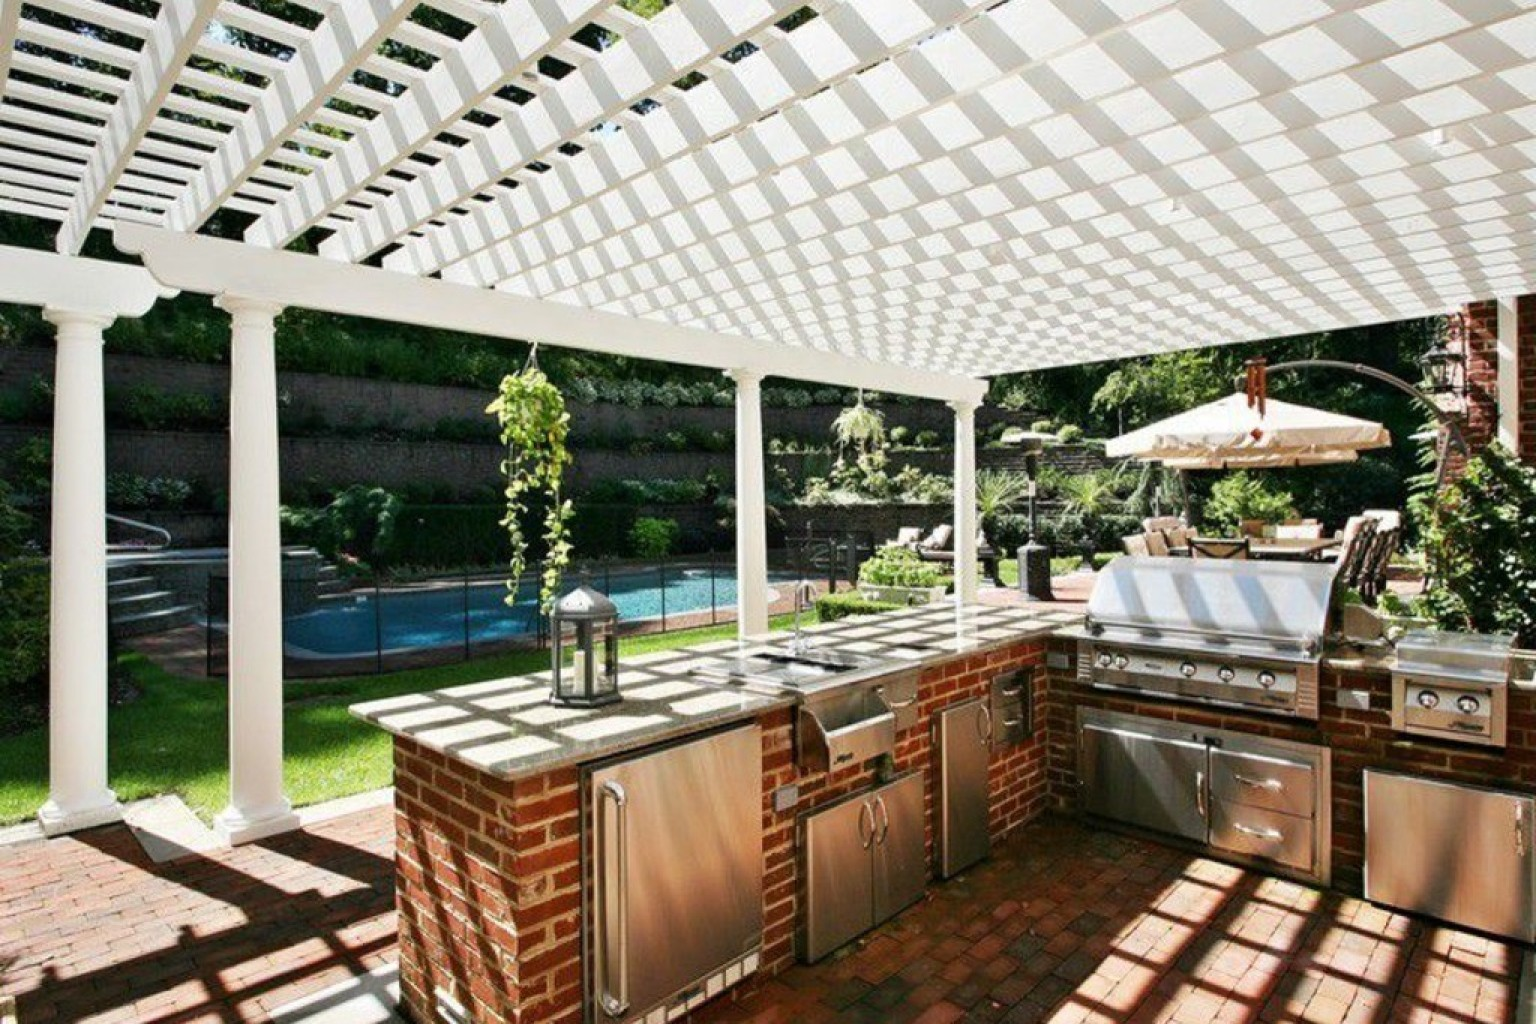 14 incredible outdoor kitchens that go way beyond grills Outdoor kitchen ideas